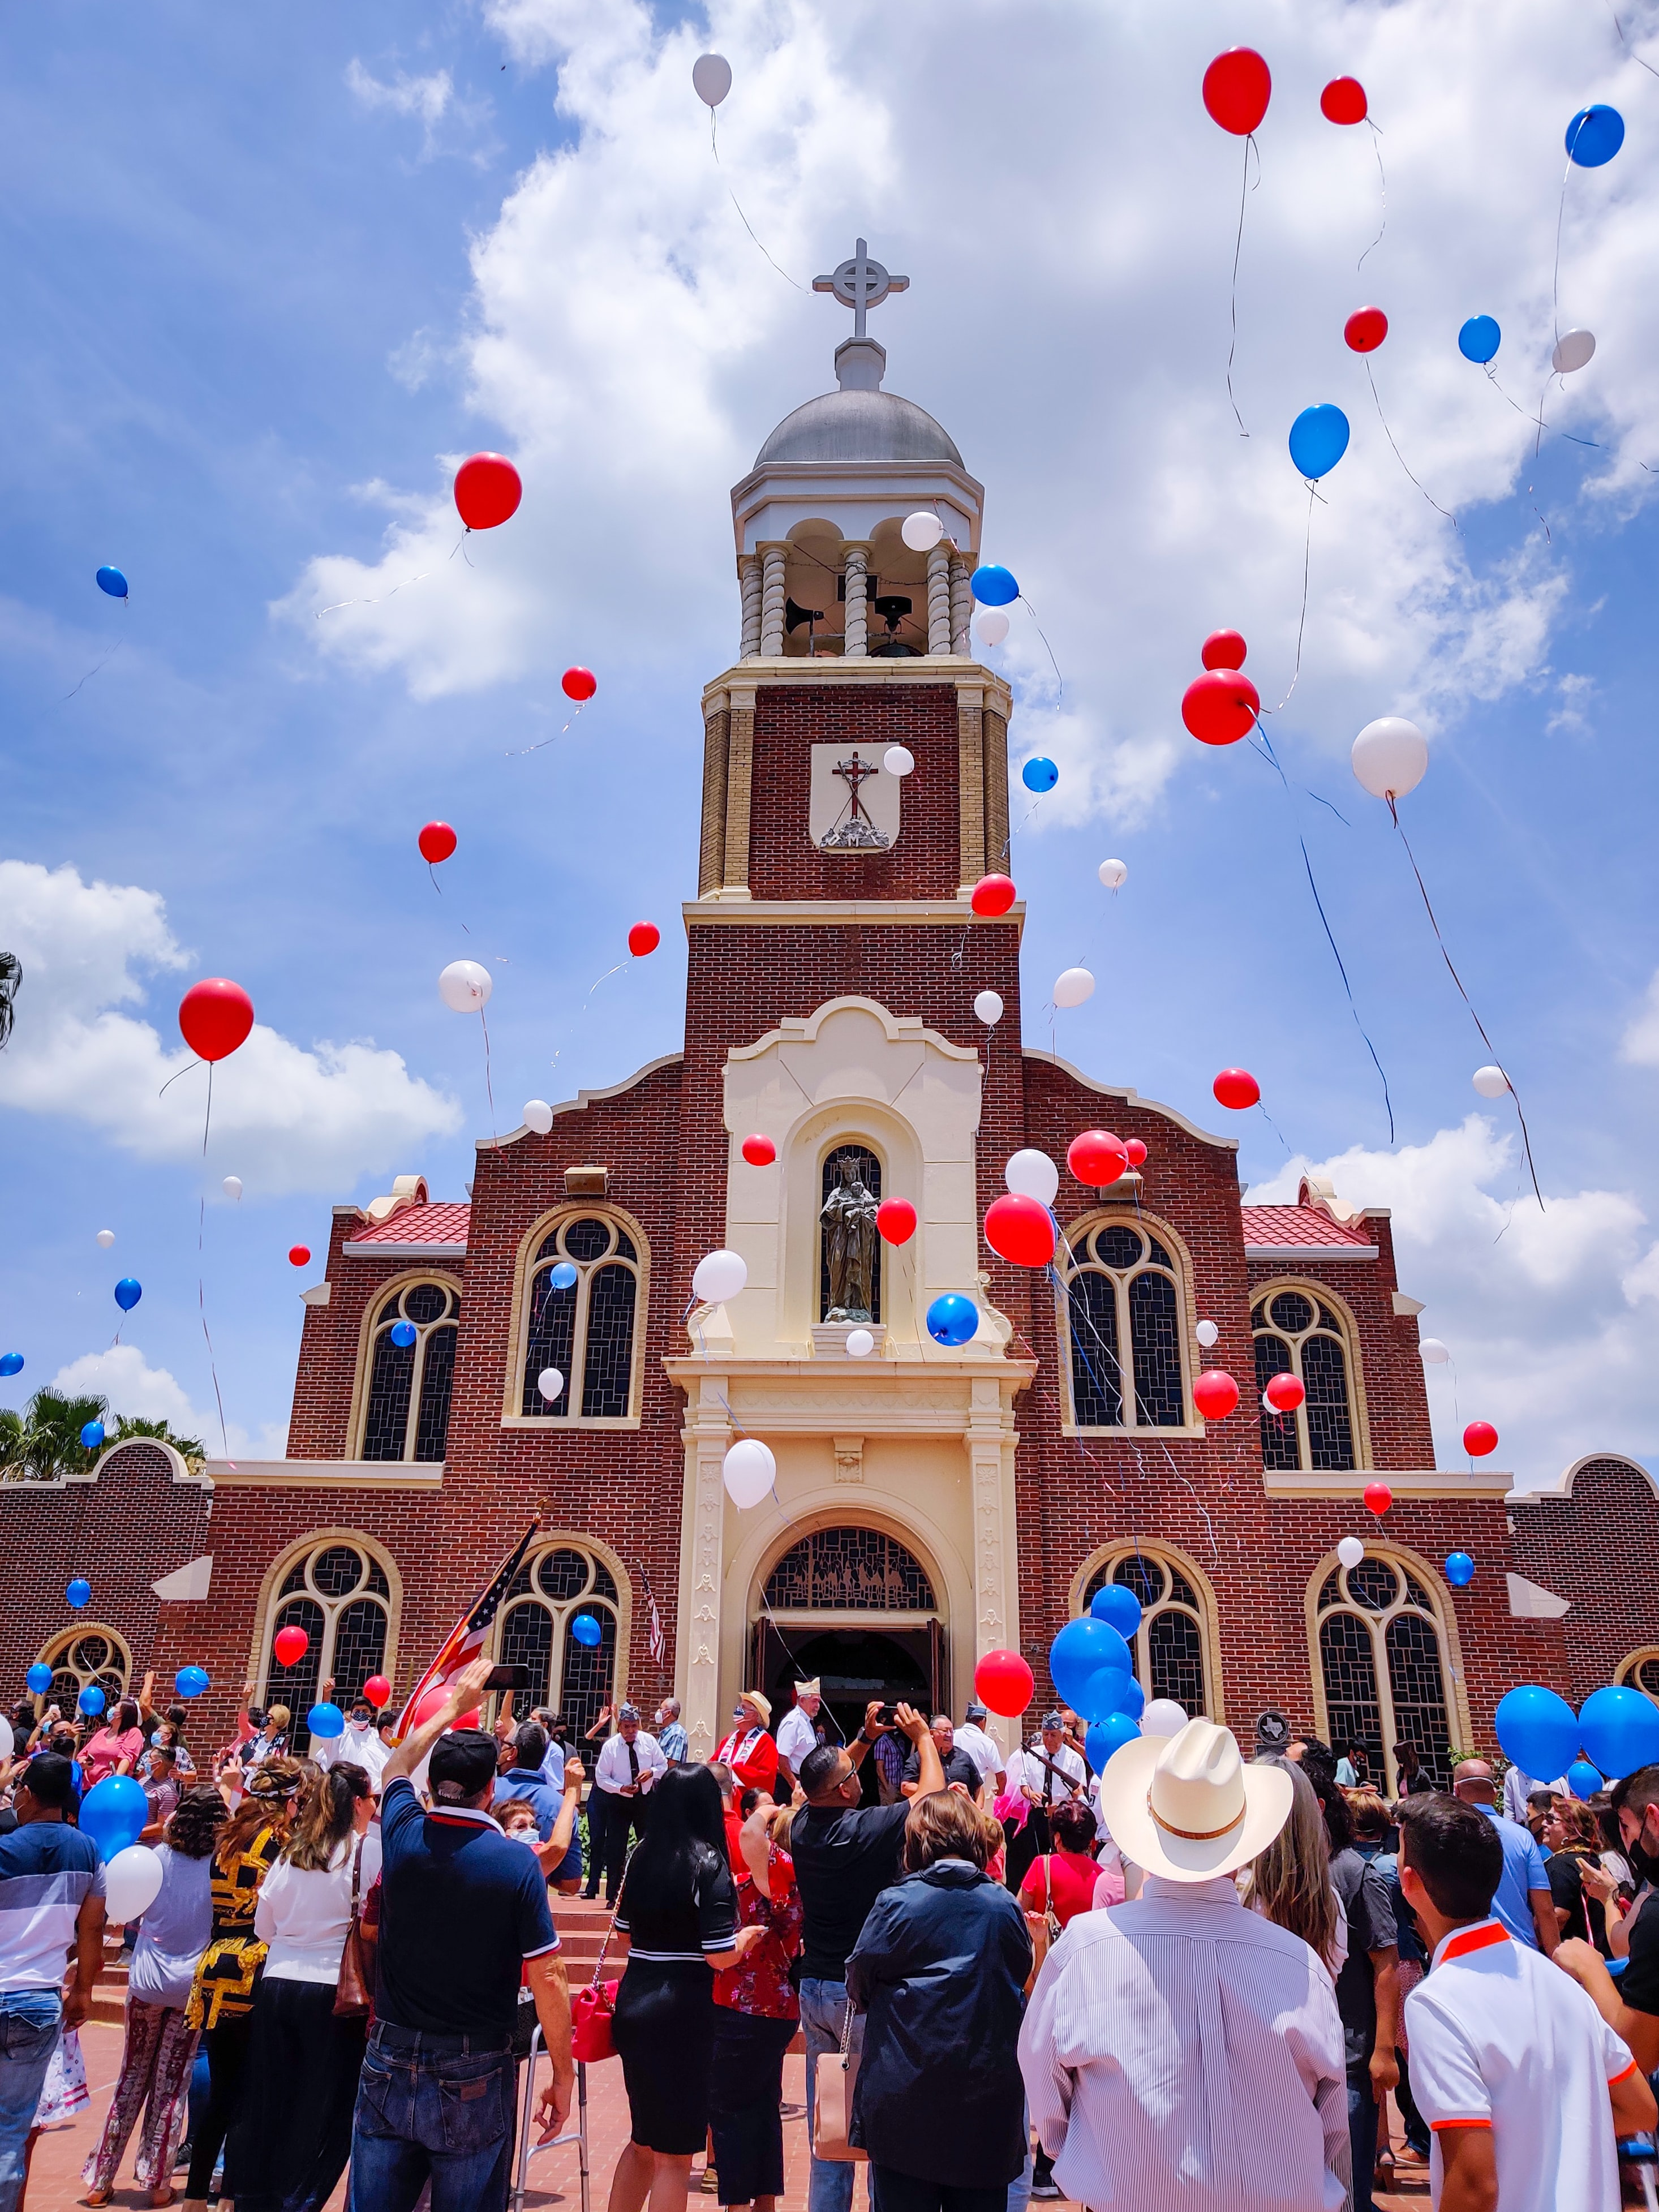 A group of people at a celebration in front of a church featureing red white and blue balloons